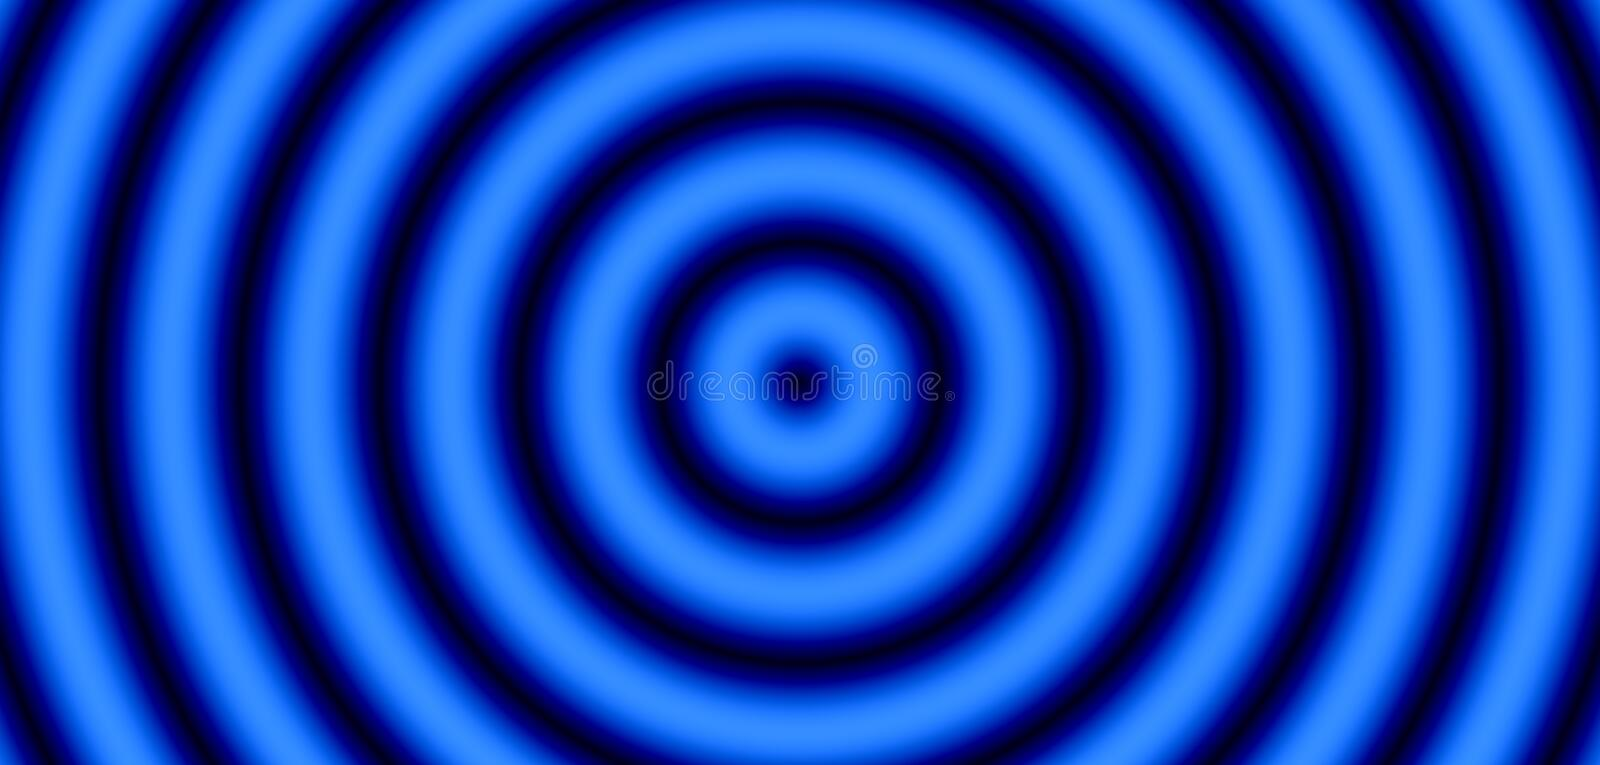 Blue and black target